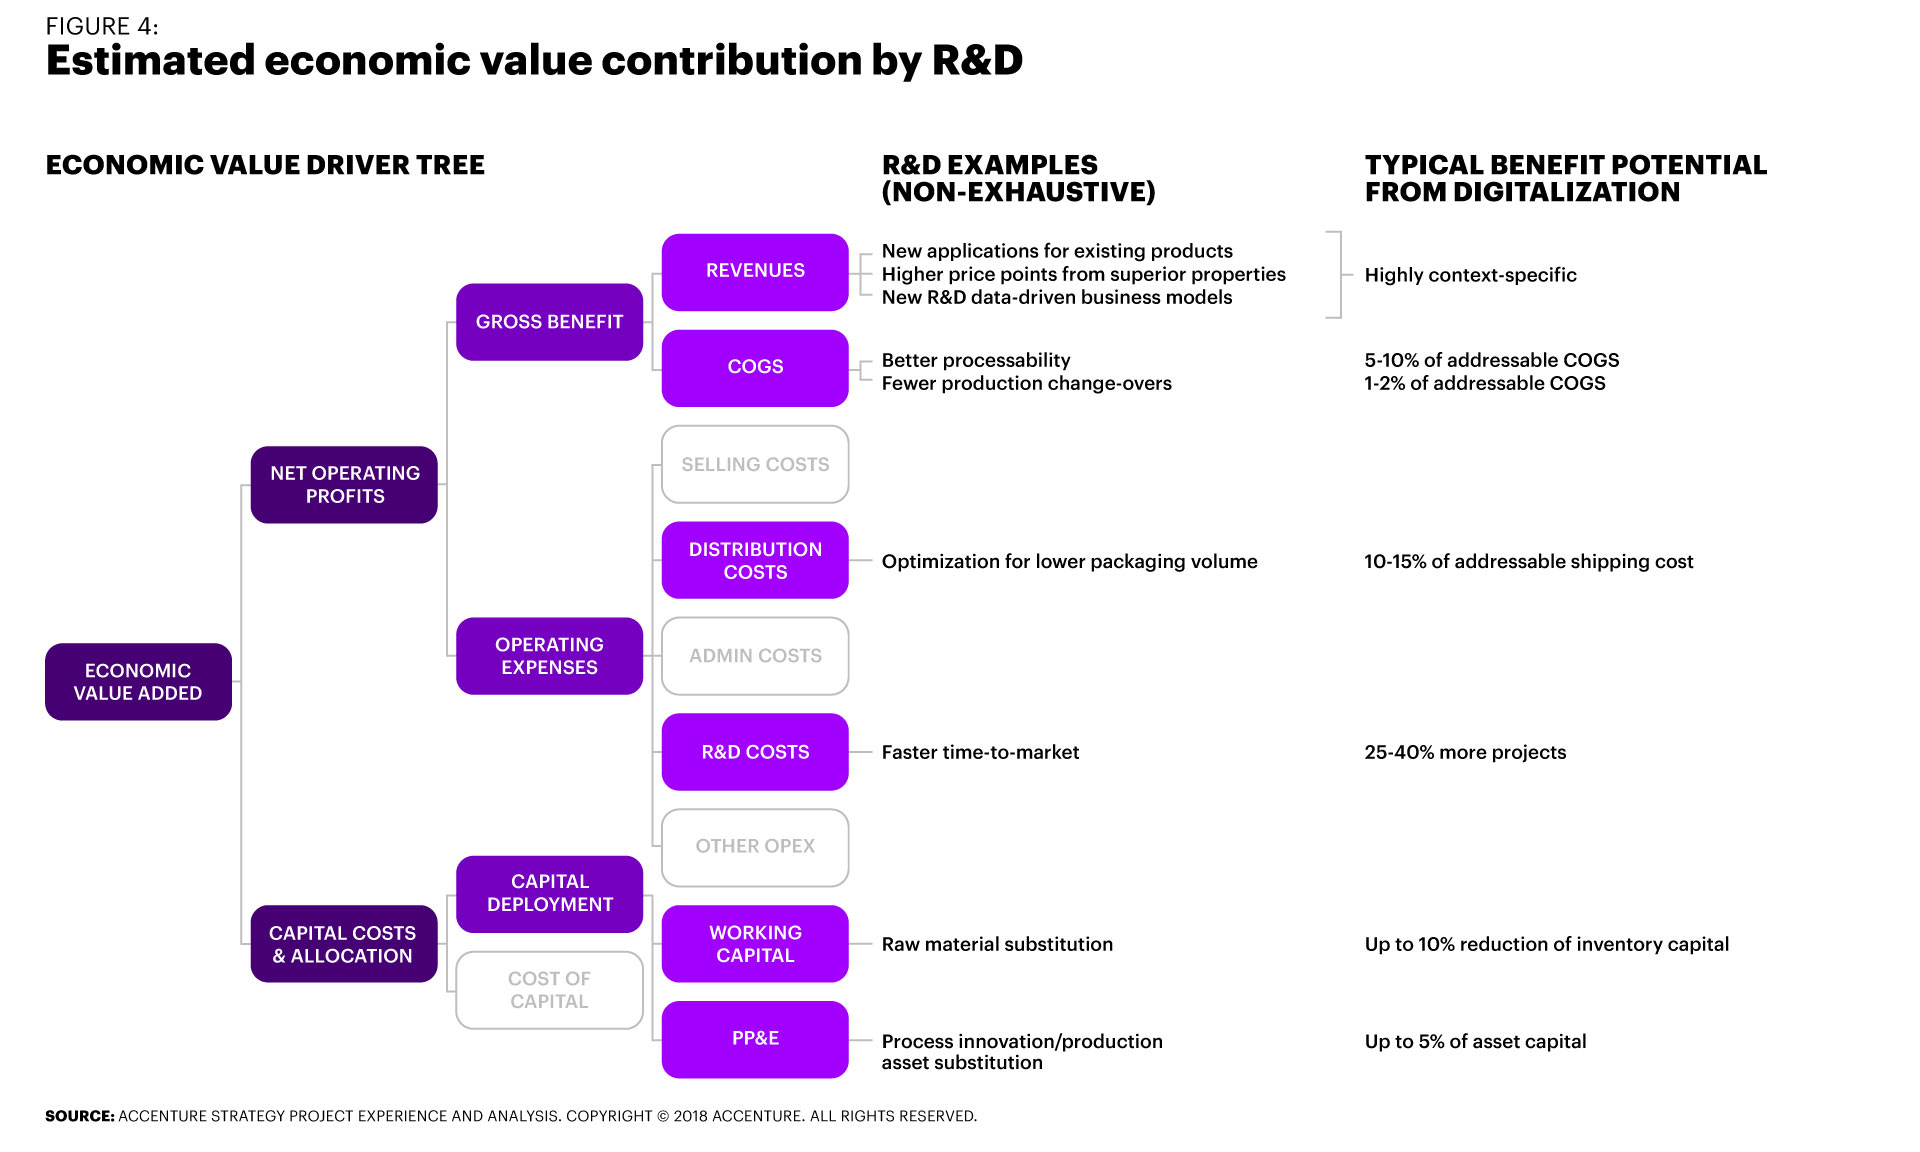 R&D digitalization can drive economic value through three specific effects: speed the innovation process; improve the availability and analyzability of R&D data leading to a higher success rate; and improve decisions throughout the entire innovation funnel.